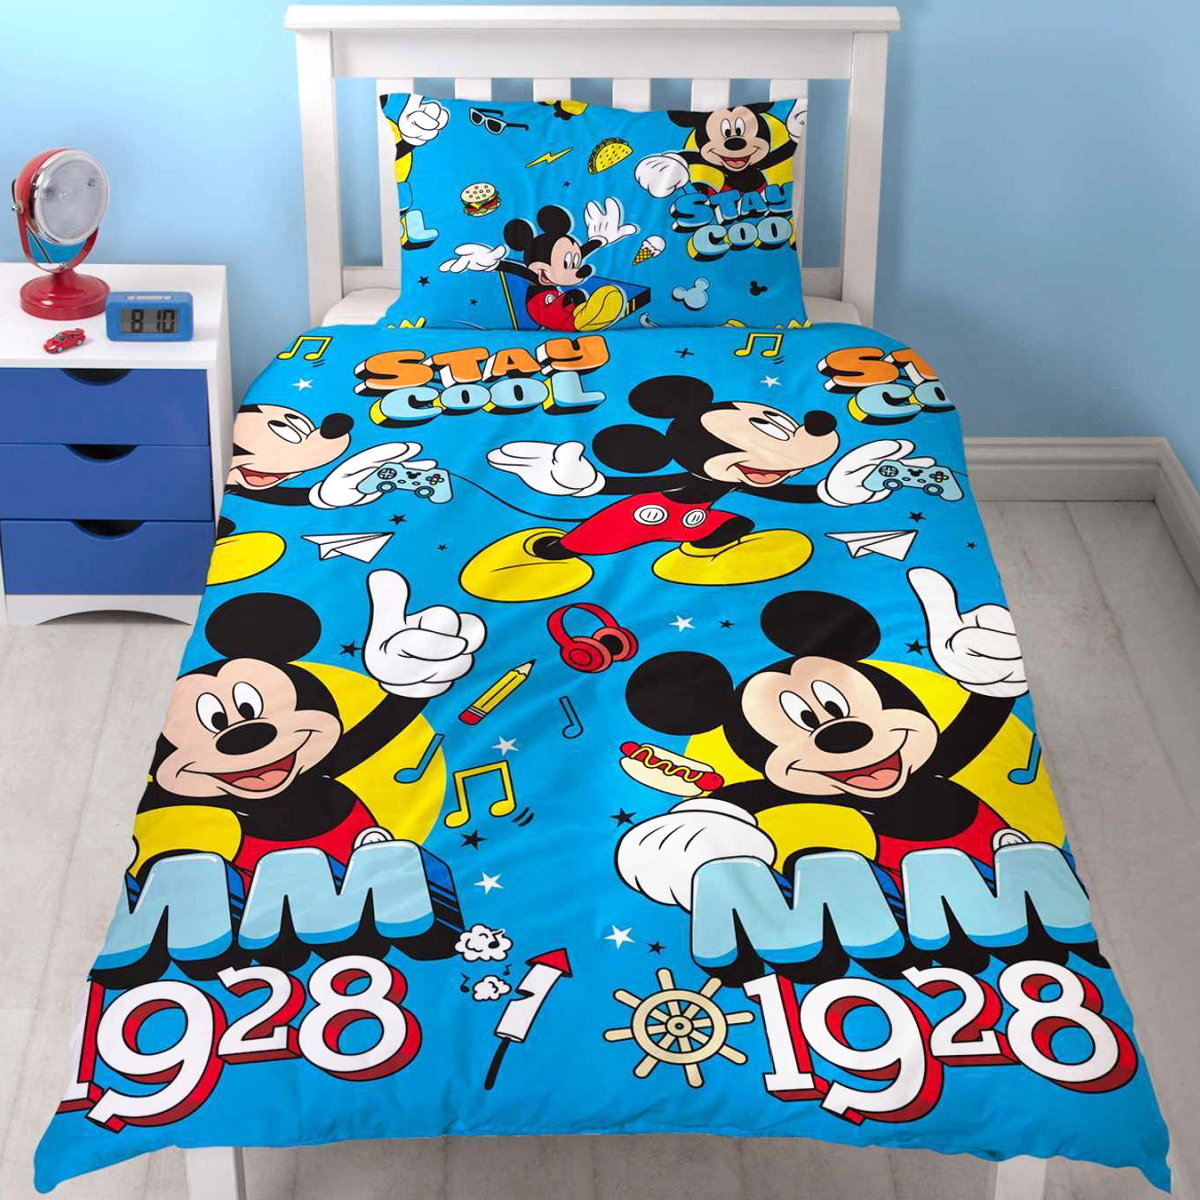 disney kinder bettw sche micky maus bettgarnitur bettbezug kissenb mickey mouse ebay. Black Bedroom Furniture Sets. Home Design Ideas